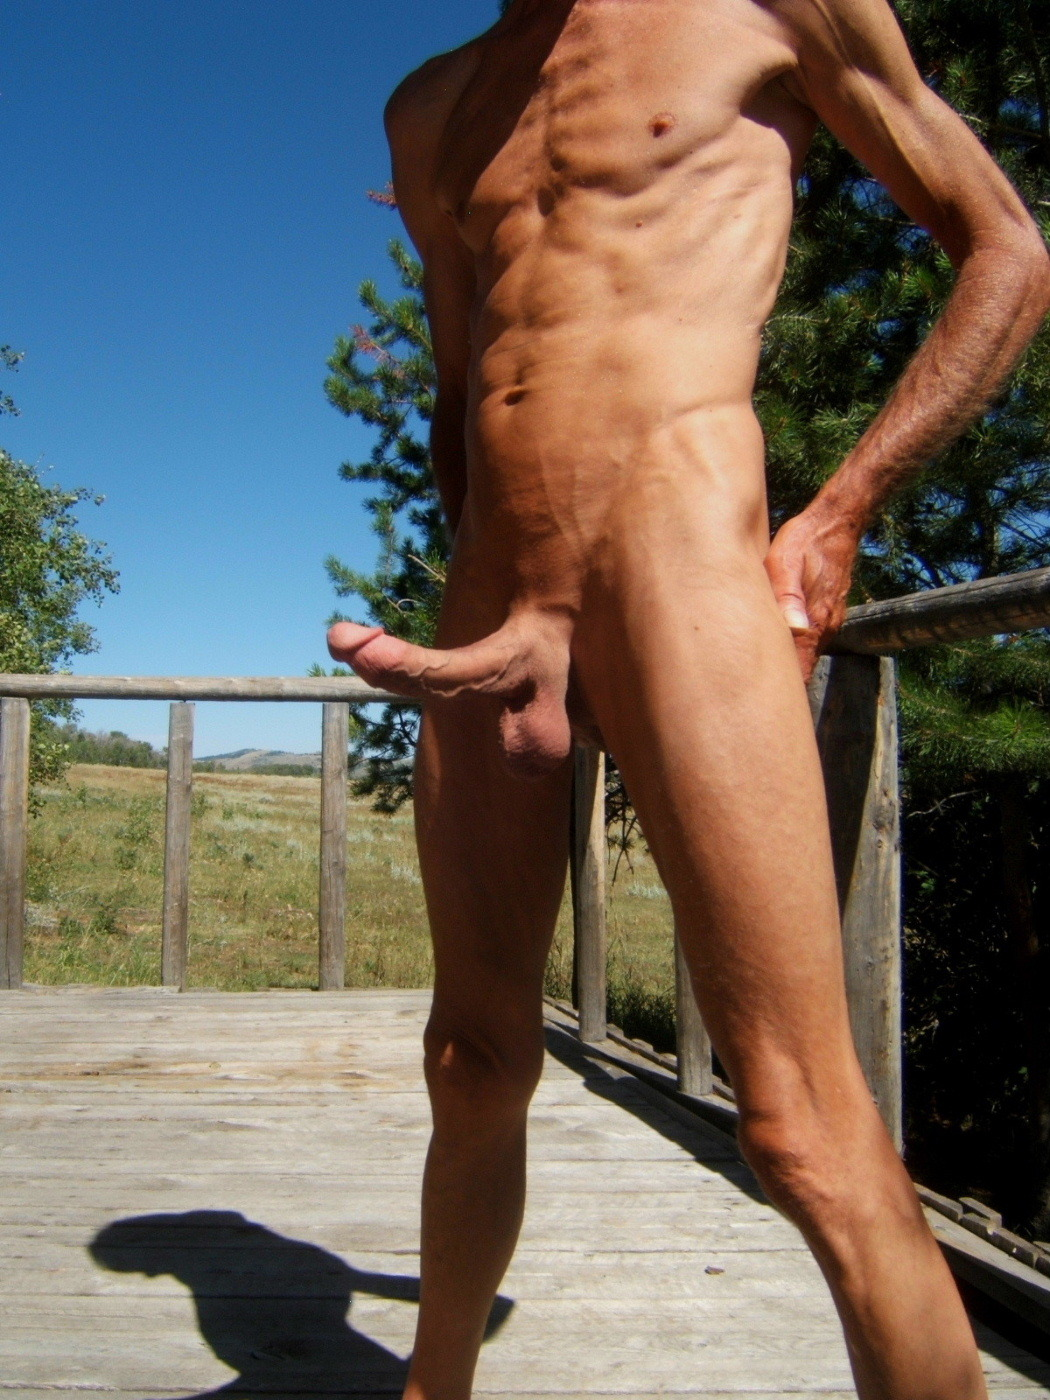 Cocks outdoors erection big